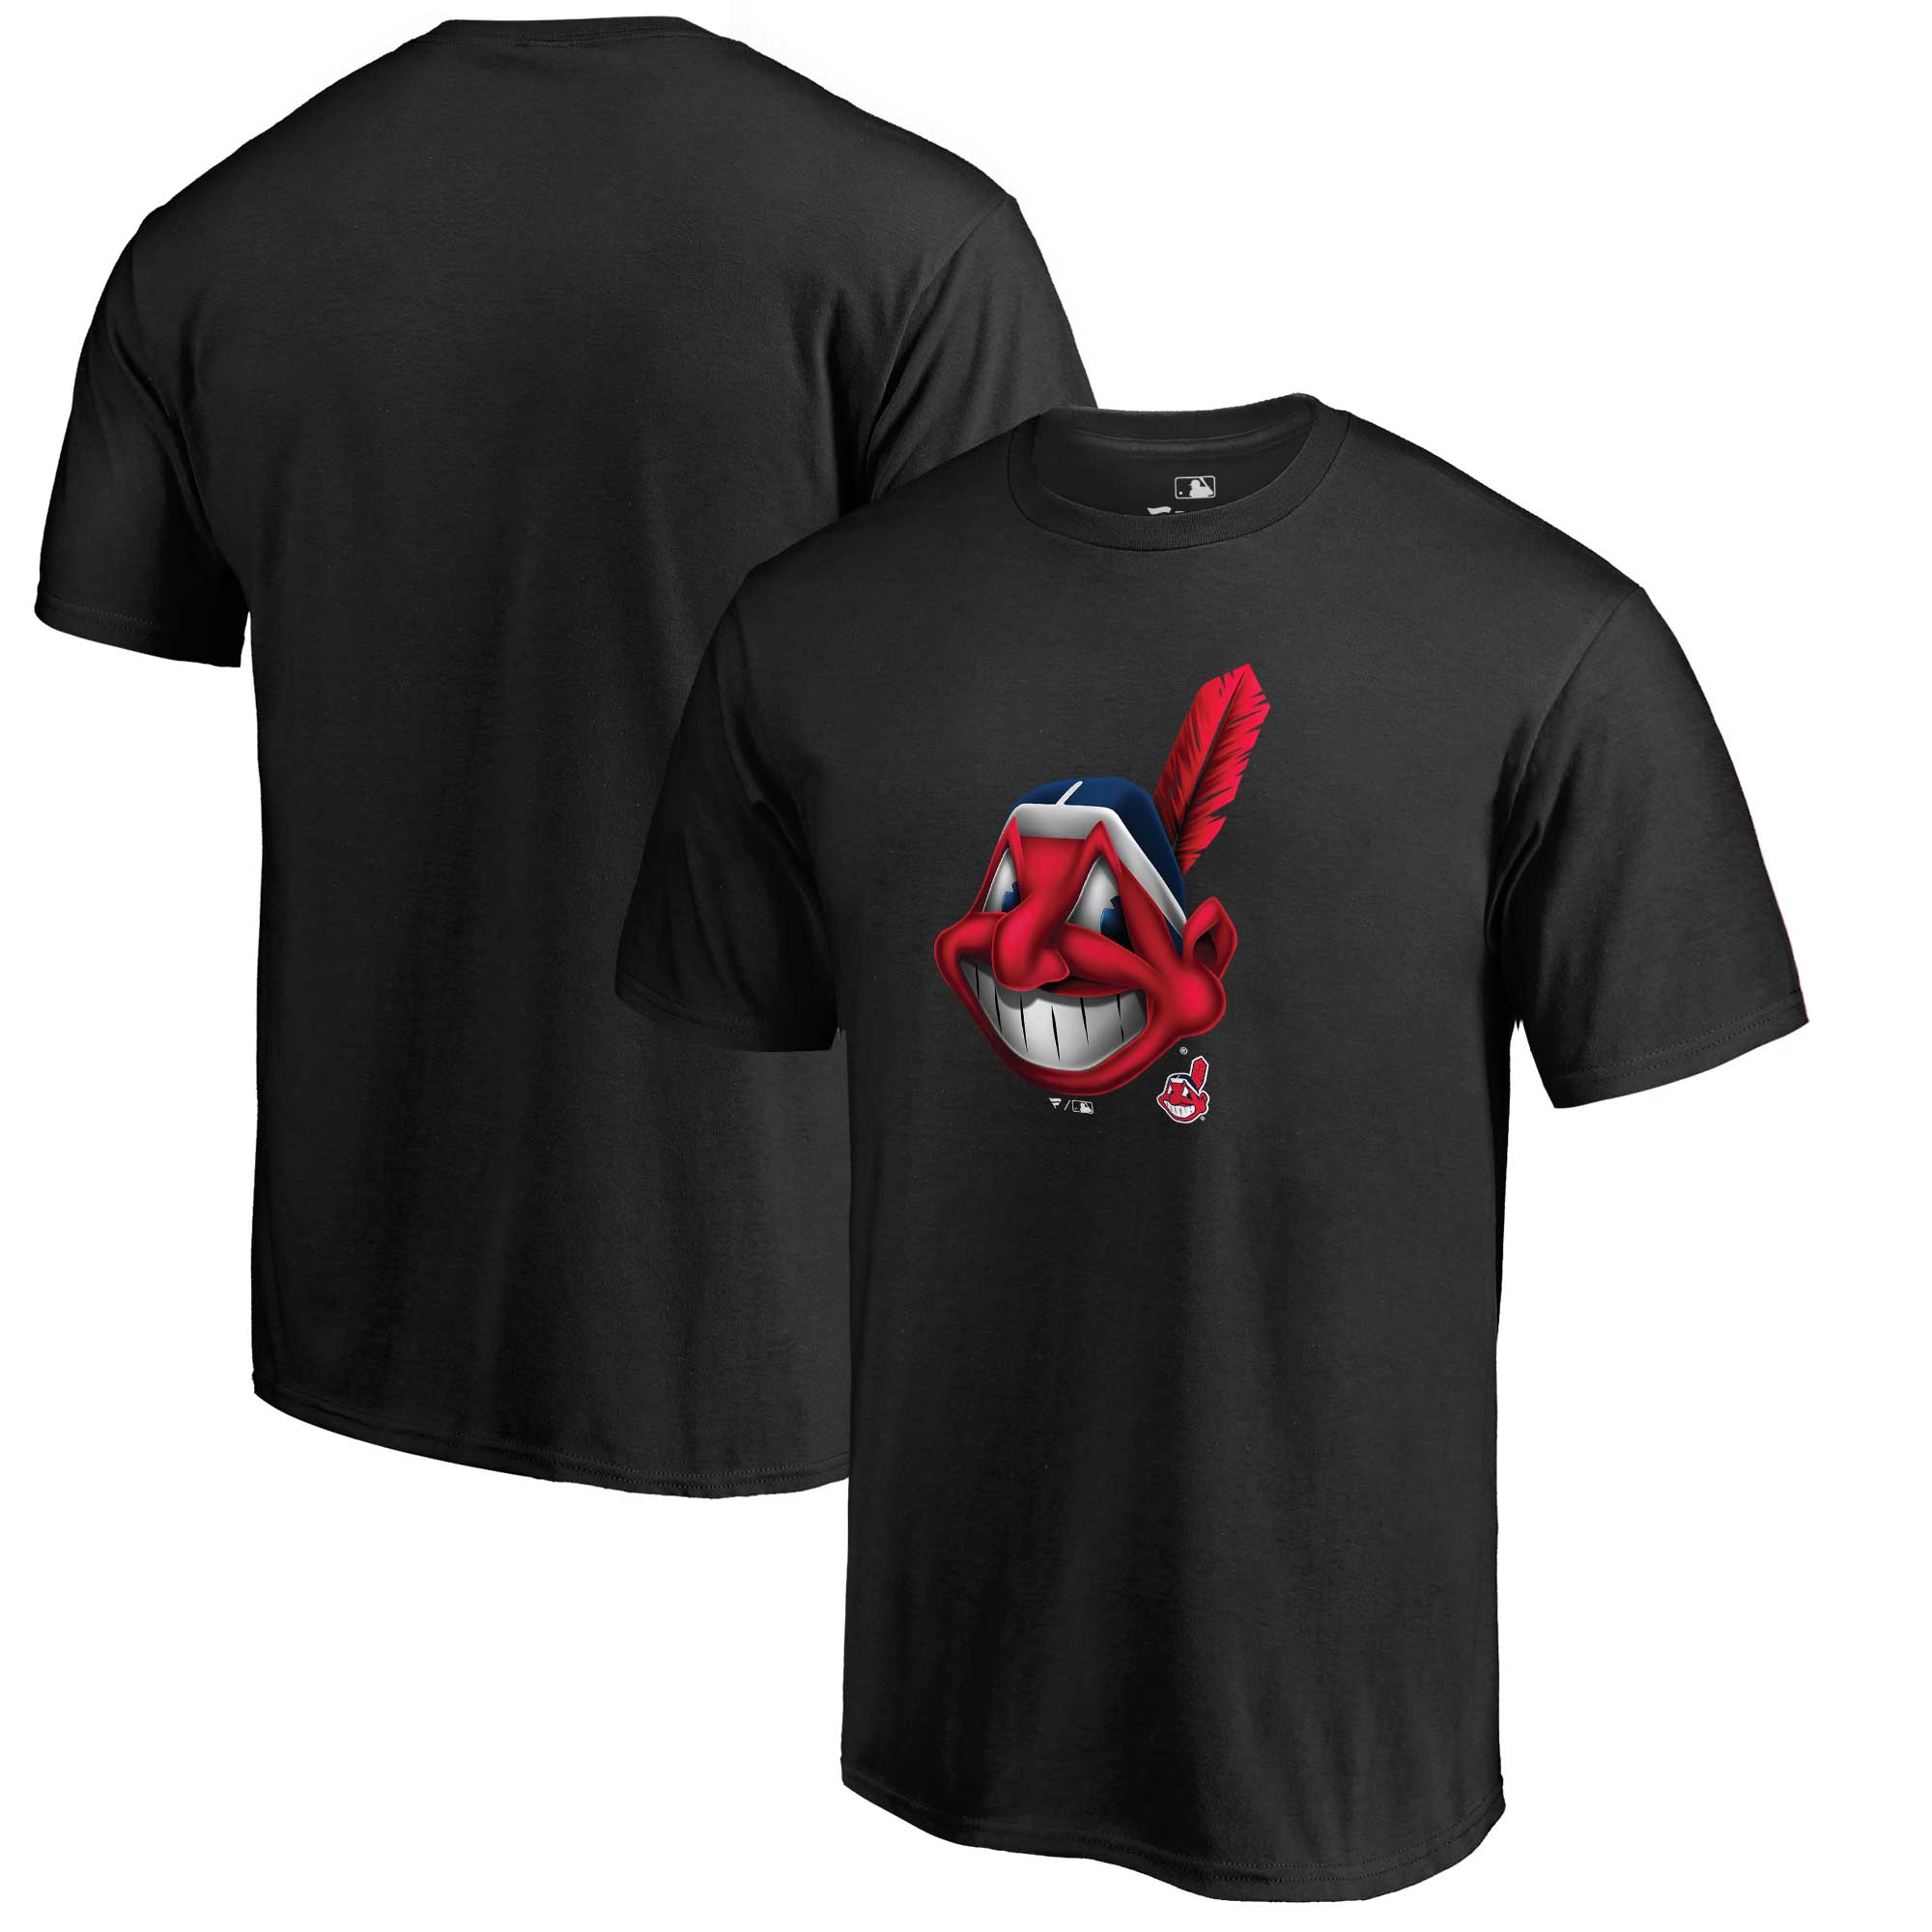 Cleveland Indians Fanatics Branded Midnight Mascot T-Shirt - Black